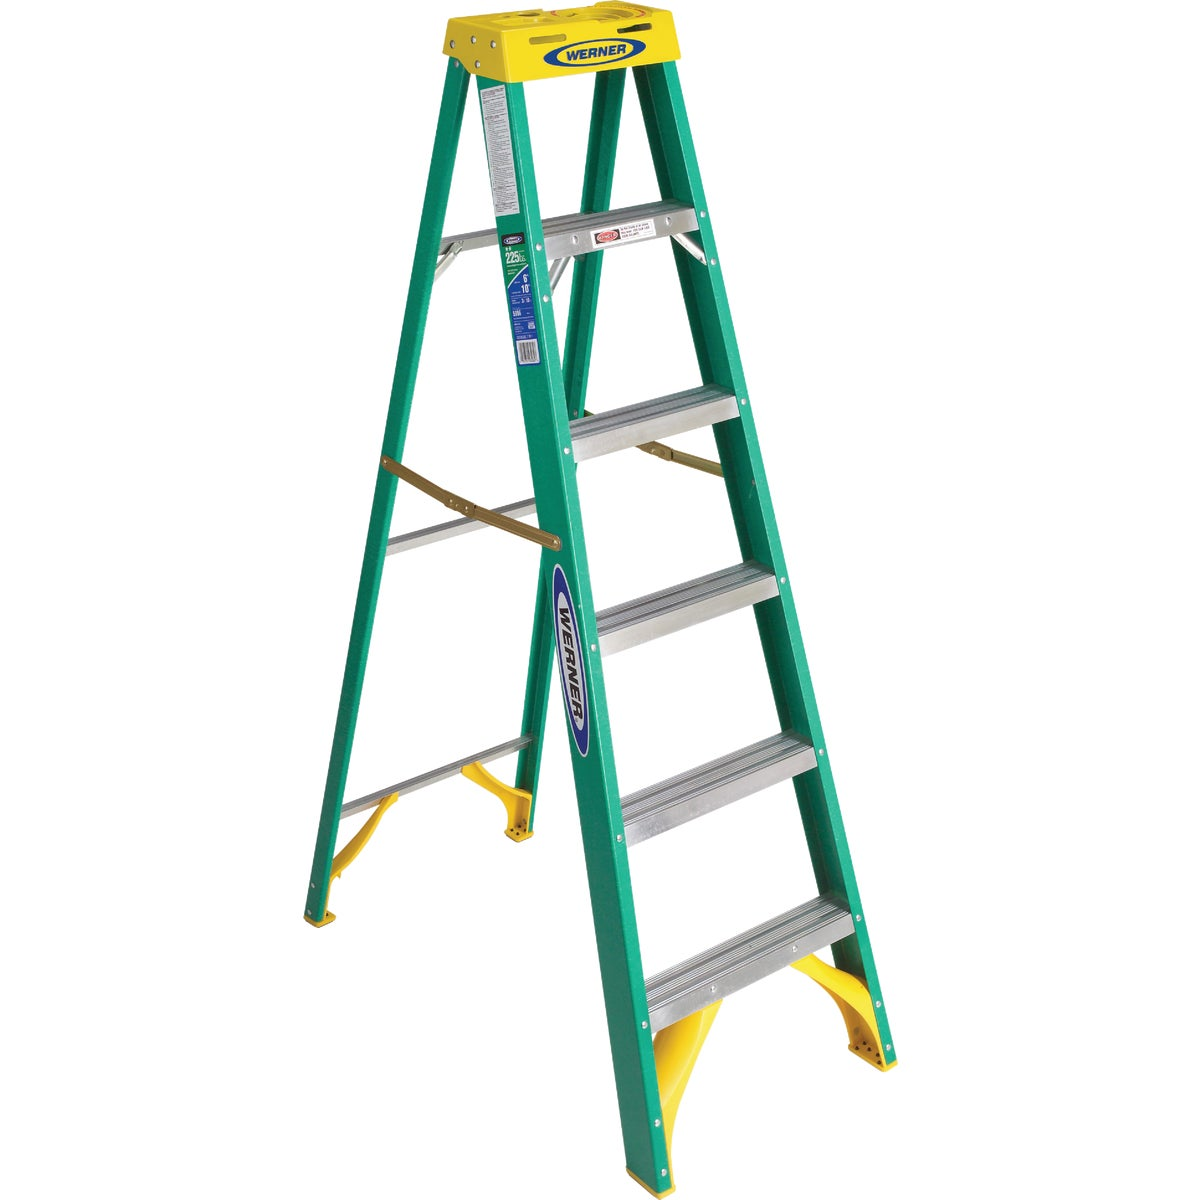 T-2 6' FBGL STEPLADDER - 5906 by Werner Co